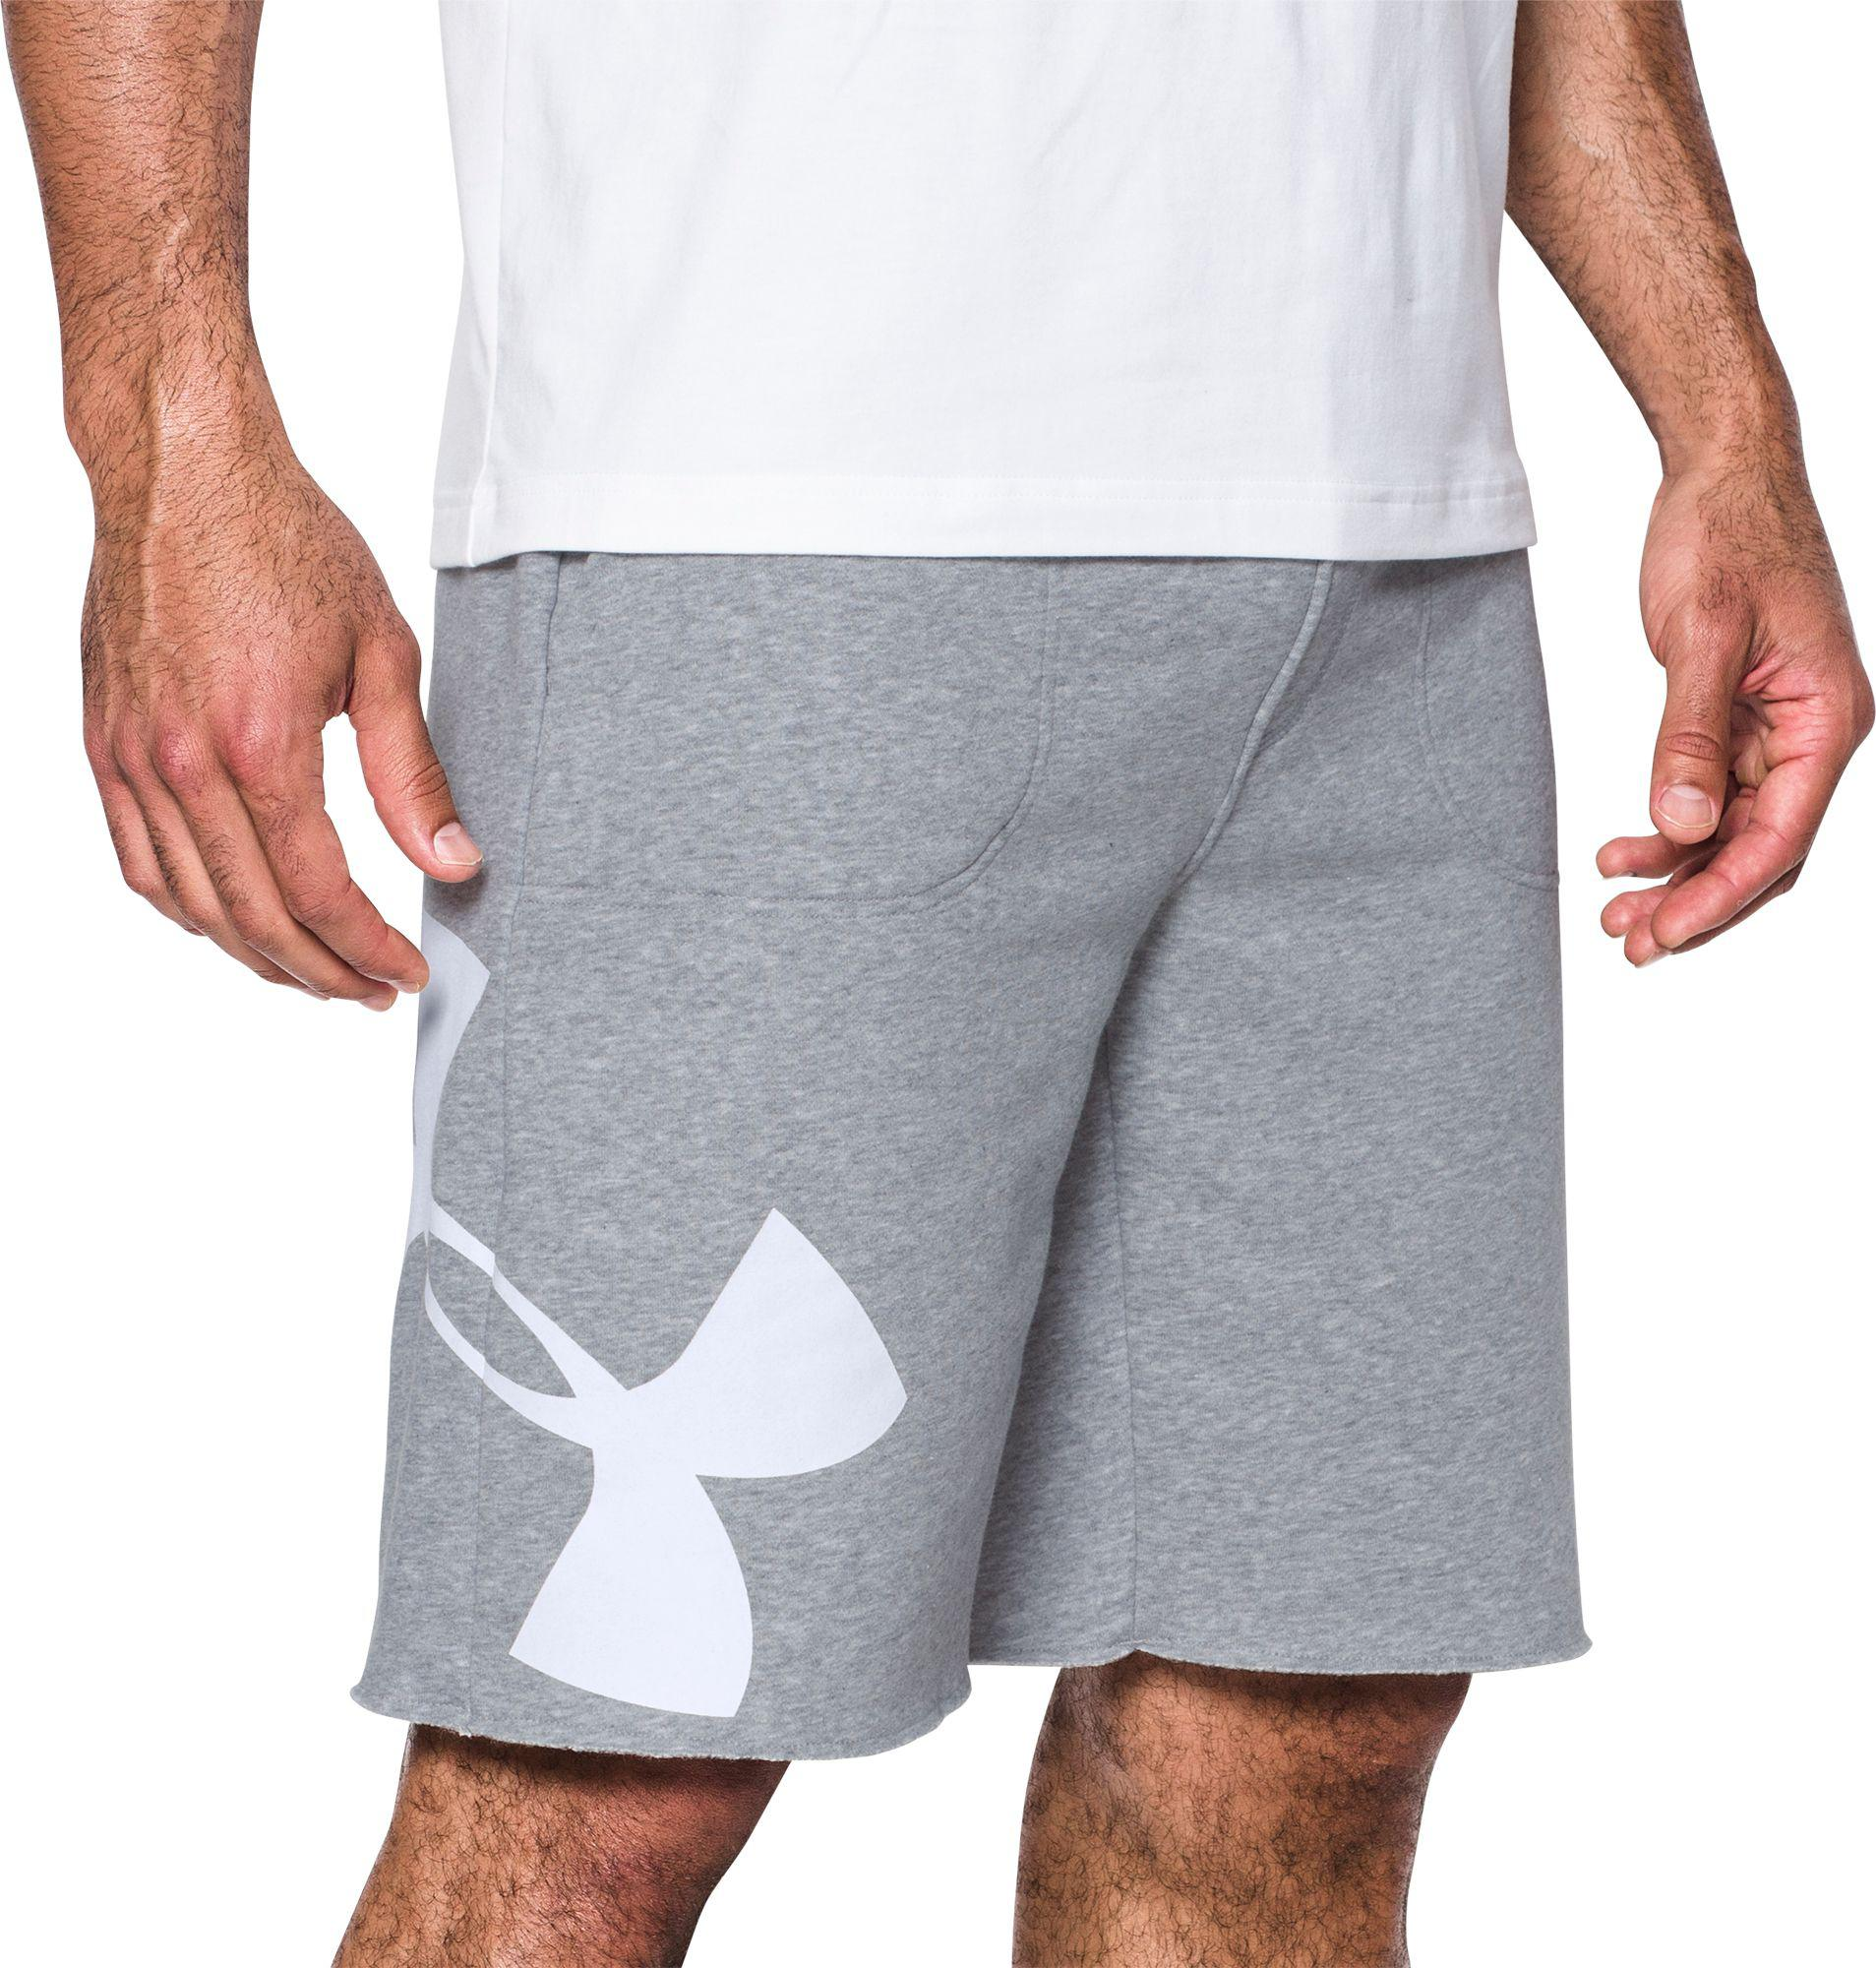 b5aada15777 Lyst - Under Armour Rival Exploded Graphic Shorts in Gray for Men